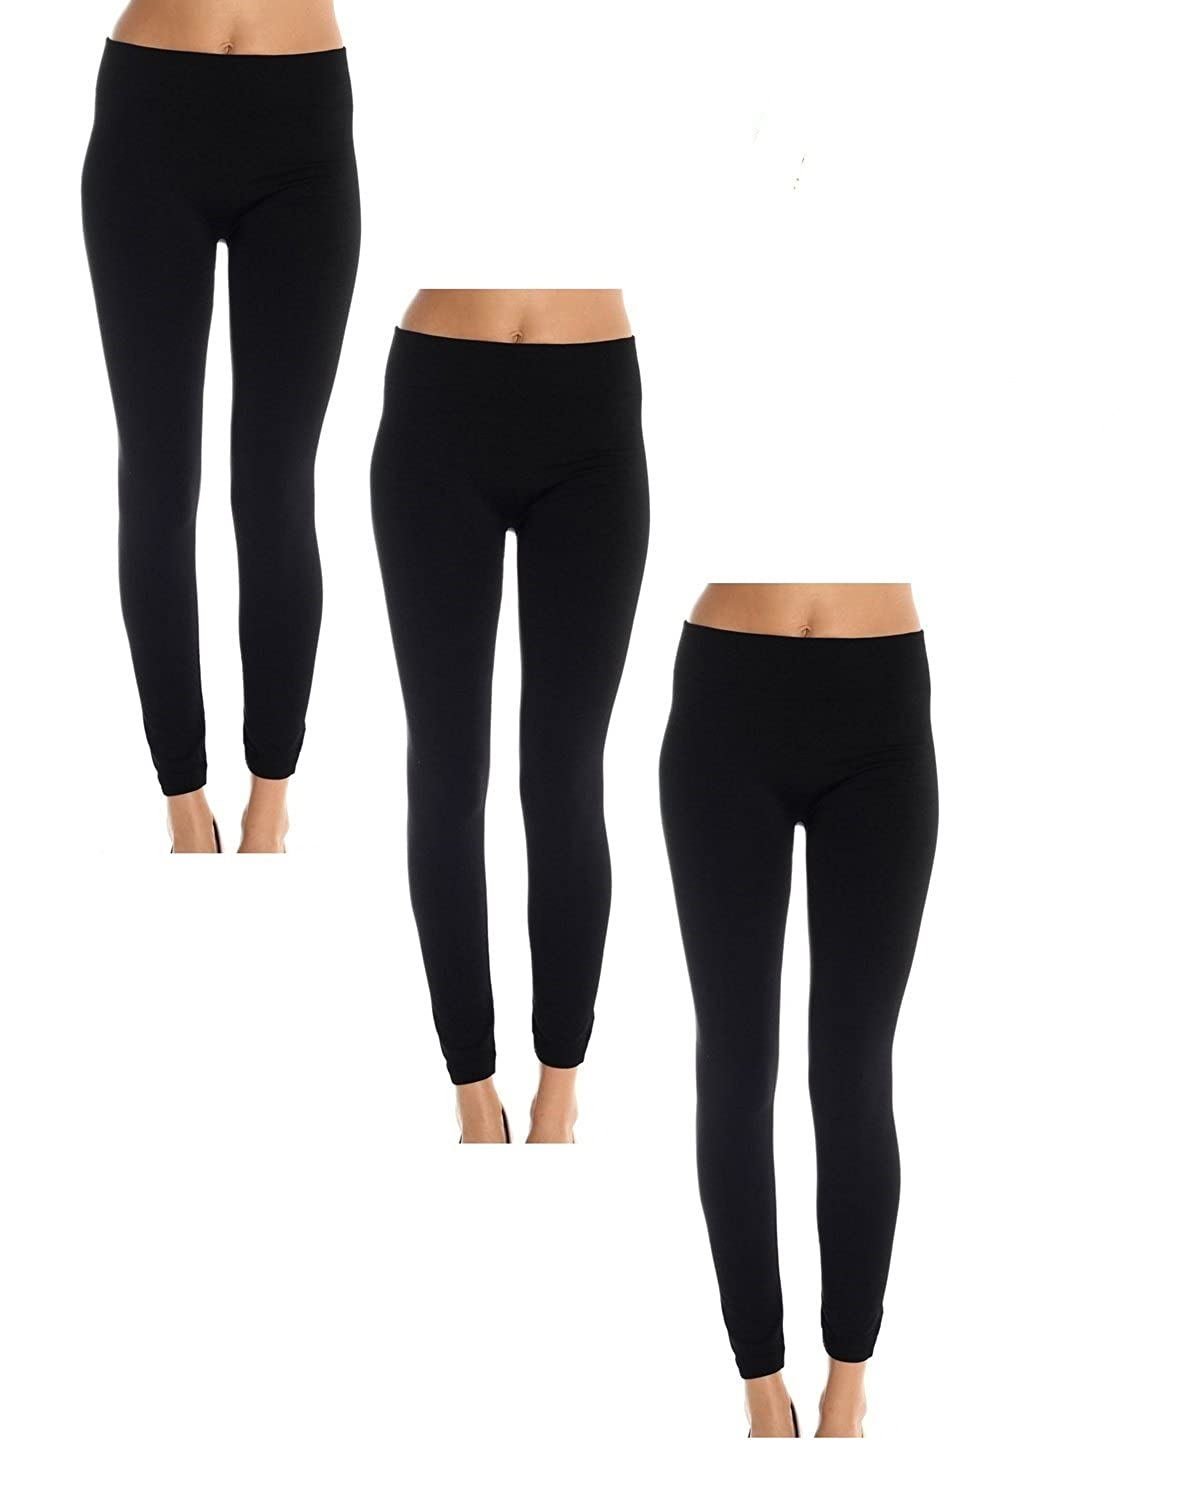 f114b5fe89102a Chinabrands.com: Dropshipping & Wholesale cheap Womens Leggings Fleece Lined,  Leg Warmers Black (3 Pack) online.